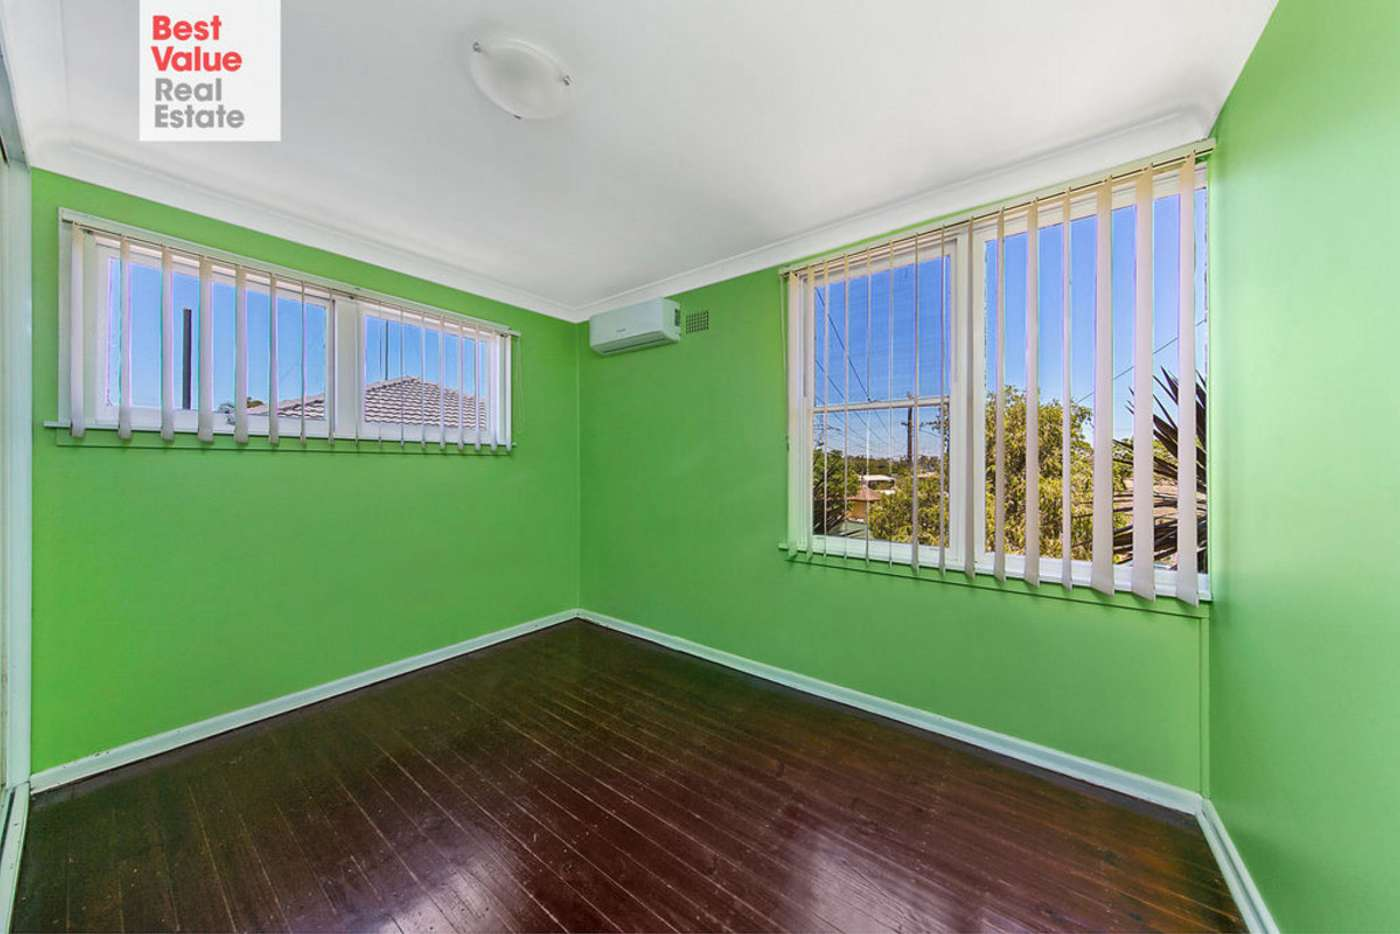 Sixth view of Homely house listing, 6 Amundsen Street, Tregear NSW 2770